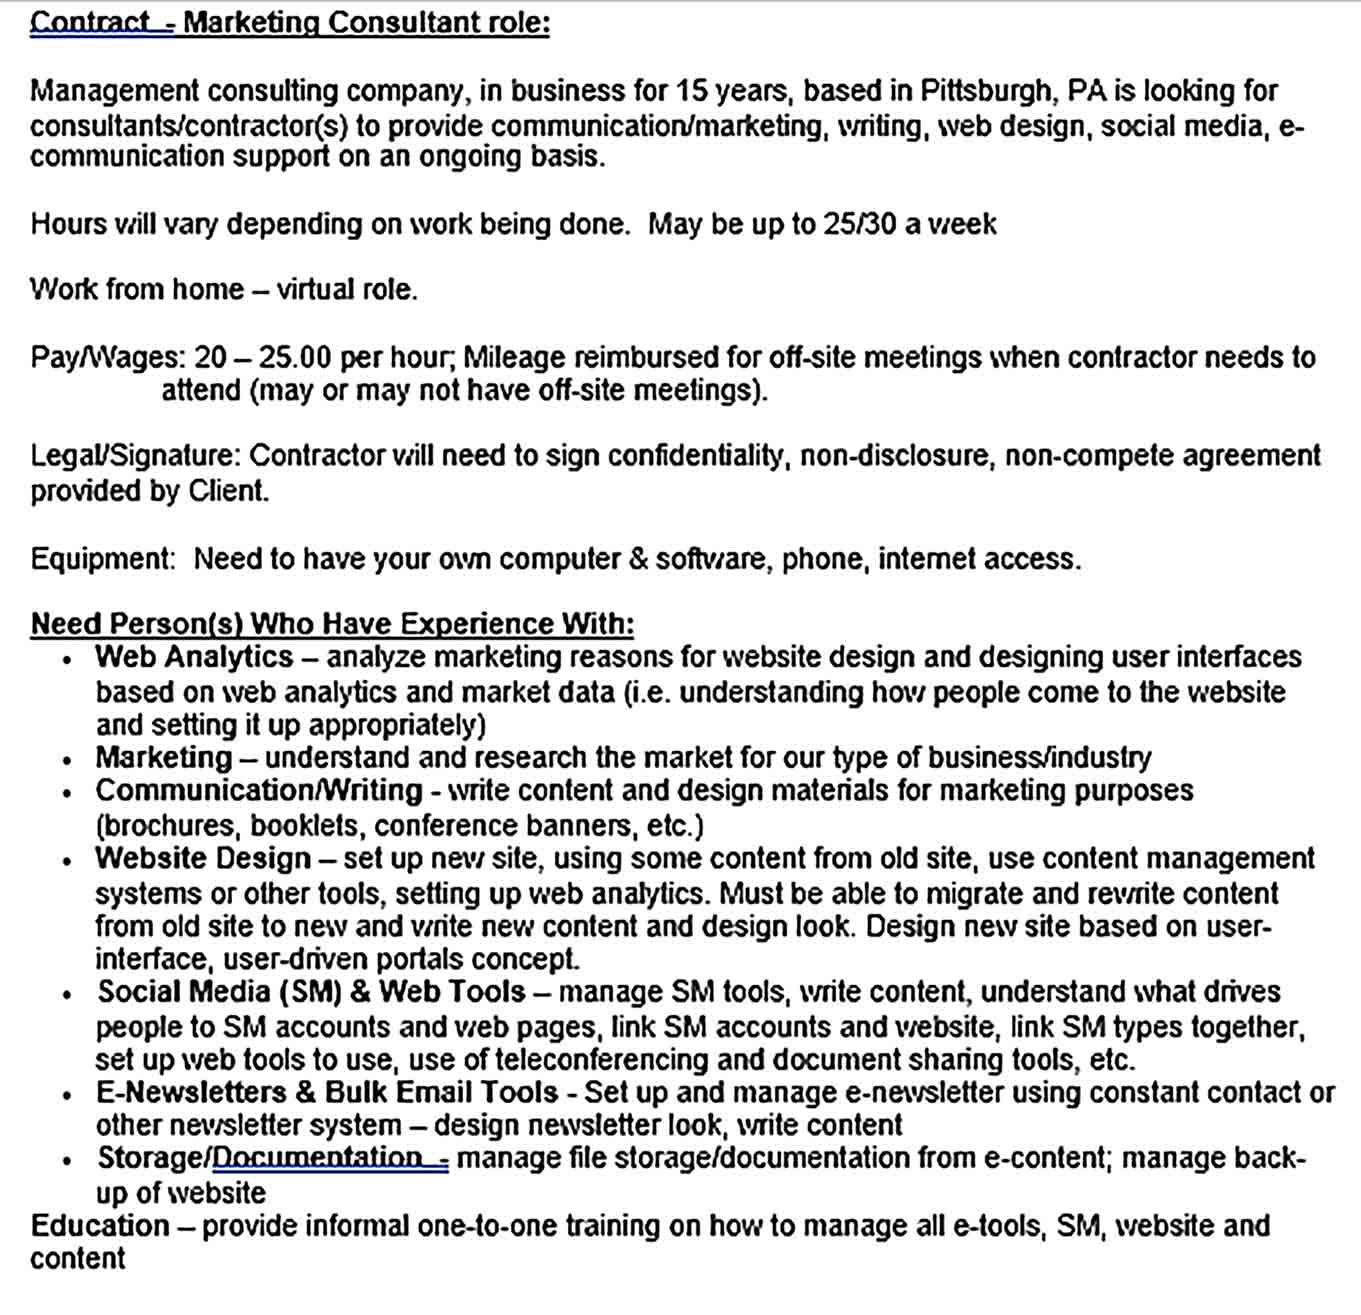 Sample Contractor Confidentiality Agreement for Marketing Contractor